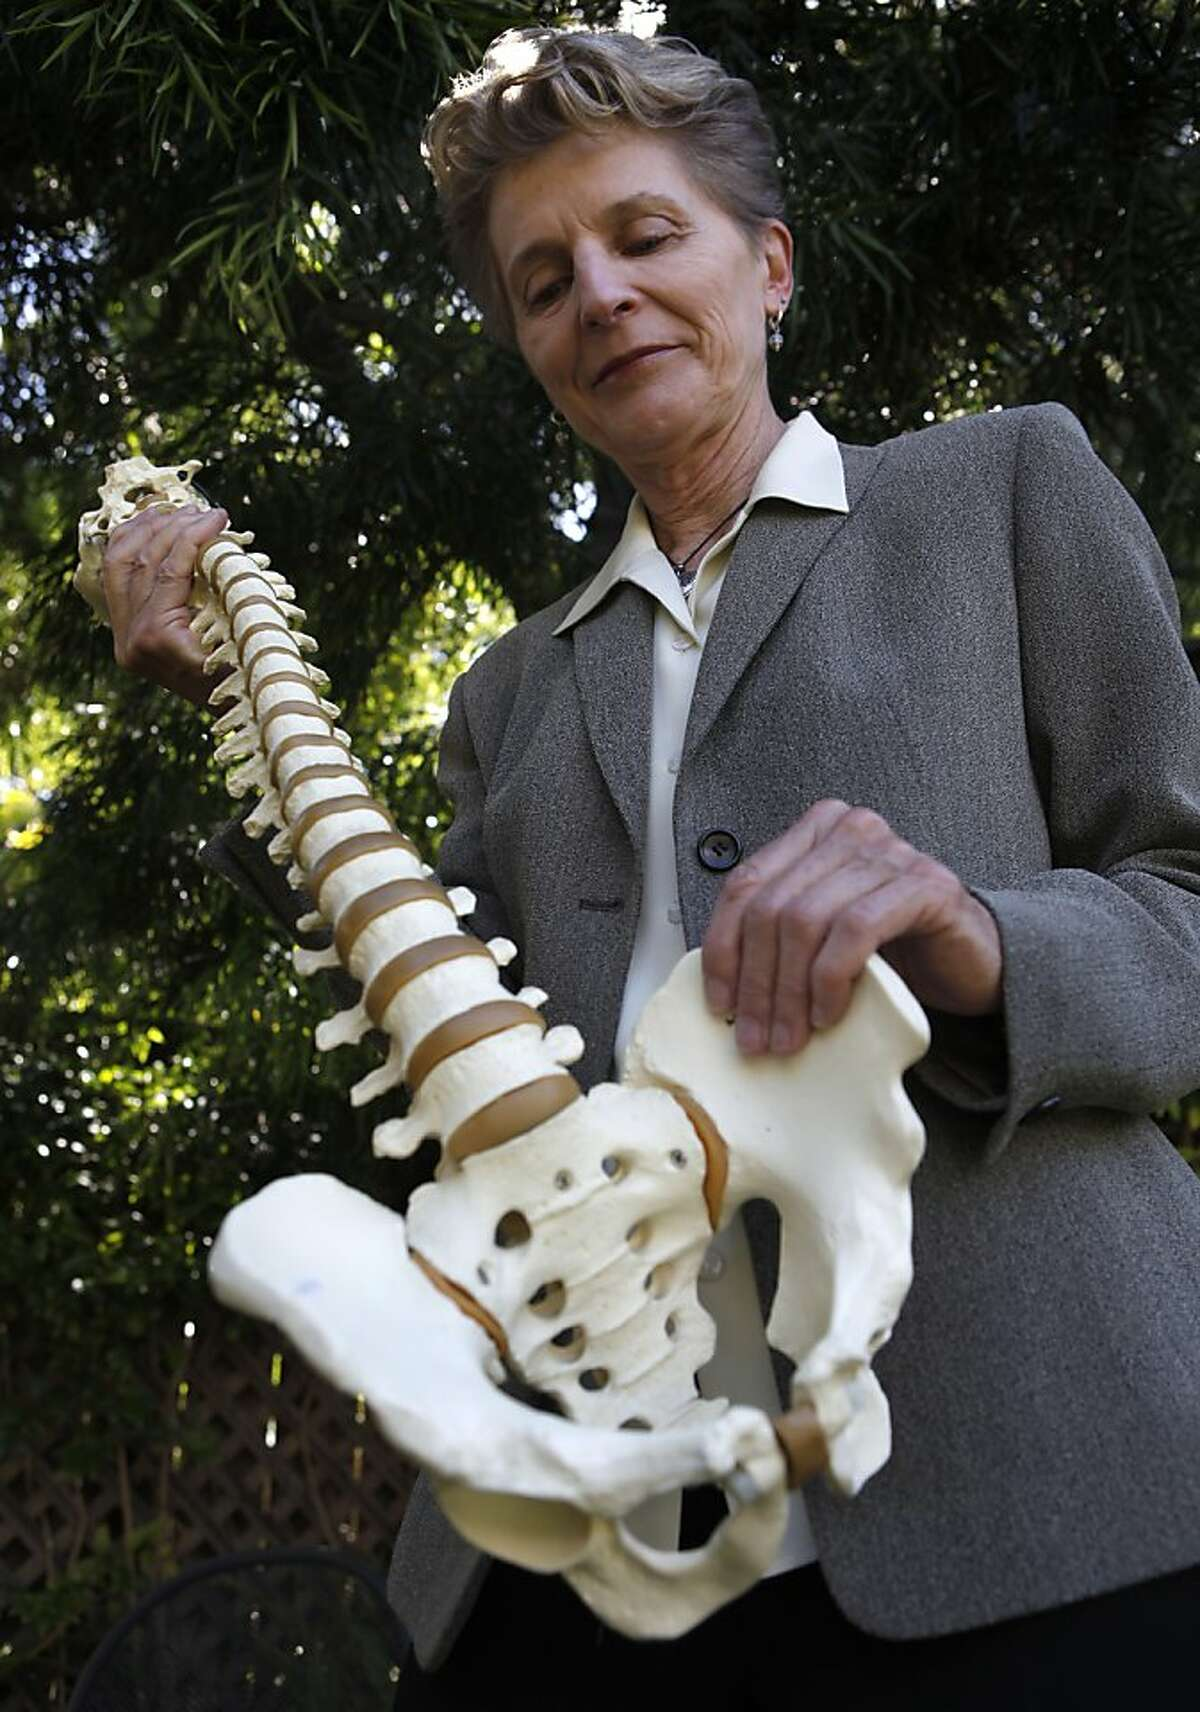 Chiropractor Lani Simpson examines a replica of a human spine and pelvic bone at her home in Berkeley, Calif. on Thursday, June 7, 2012. Simpson is a leading expert on osteoporosis, a condition which causes bones to become brittle and fragile.